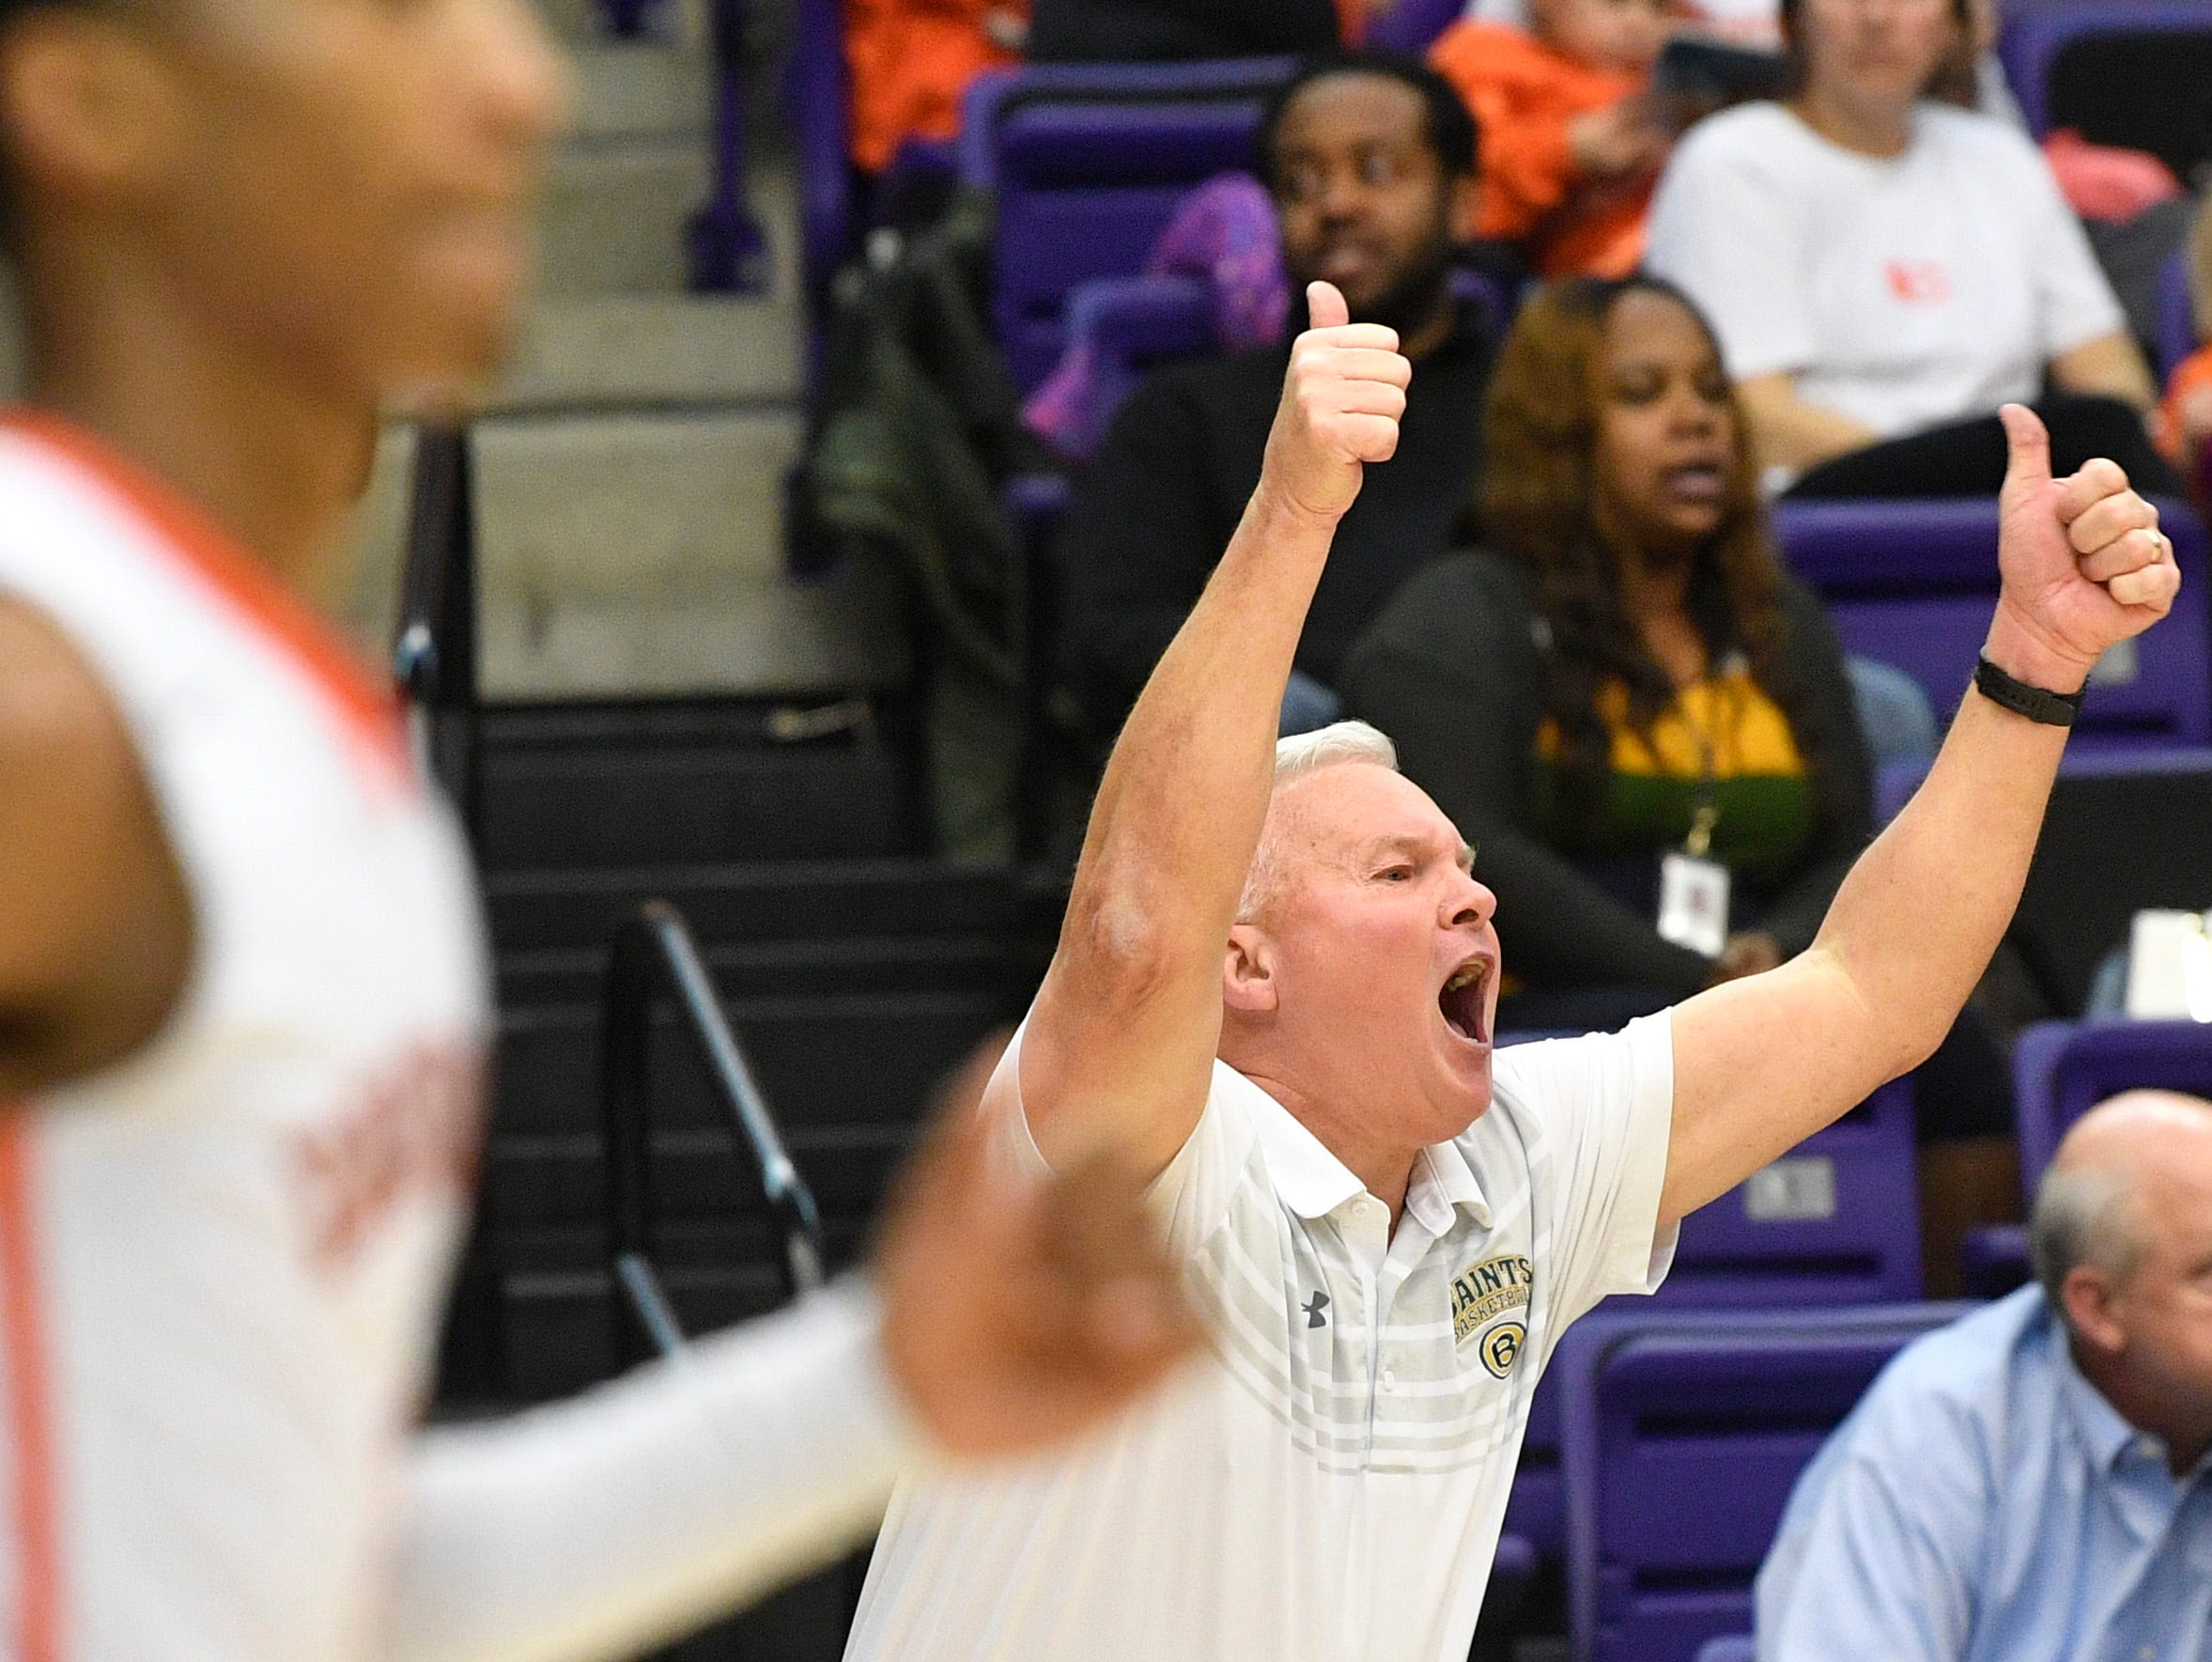 Coach John Harrington shouts encouragement to his team as Ensworth plays Briarcrest Christian in the Division II- AA semifinals at Allen Arena  Thursday, Feb. 28, 2019, in Nashville, Tenn.